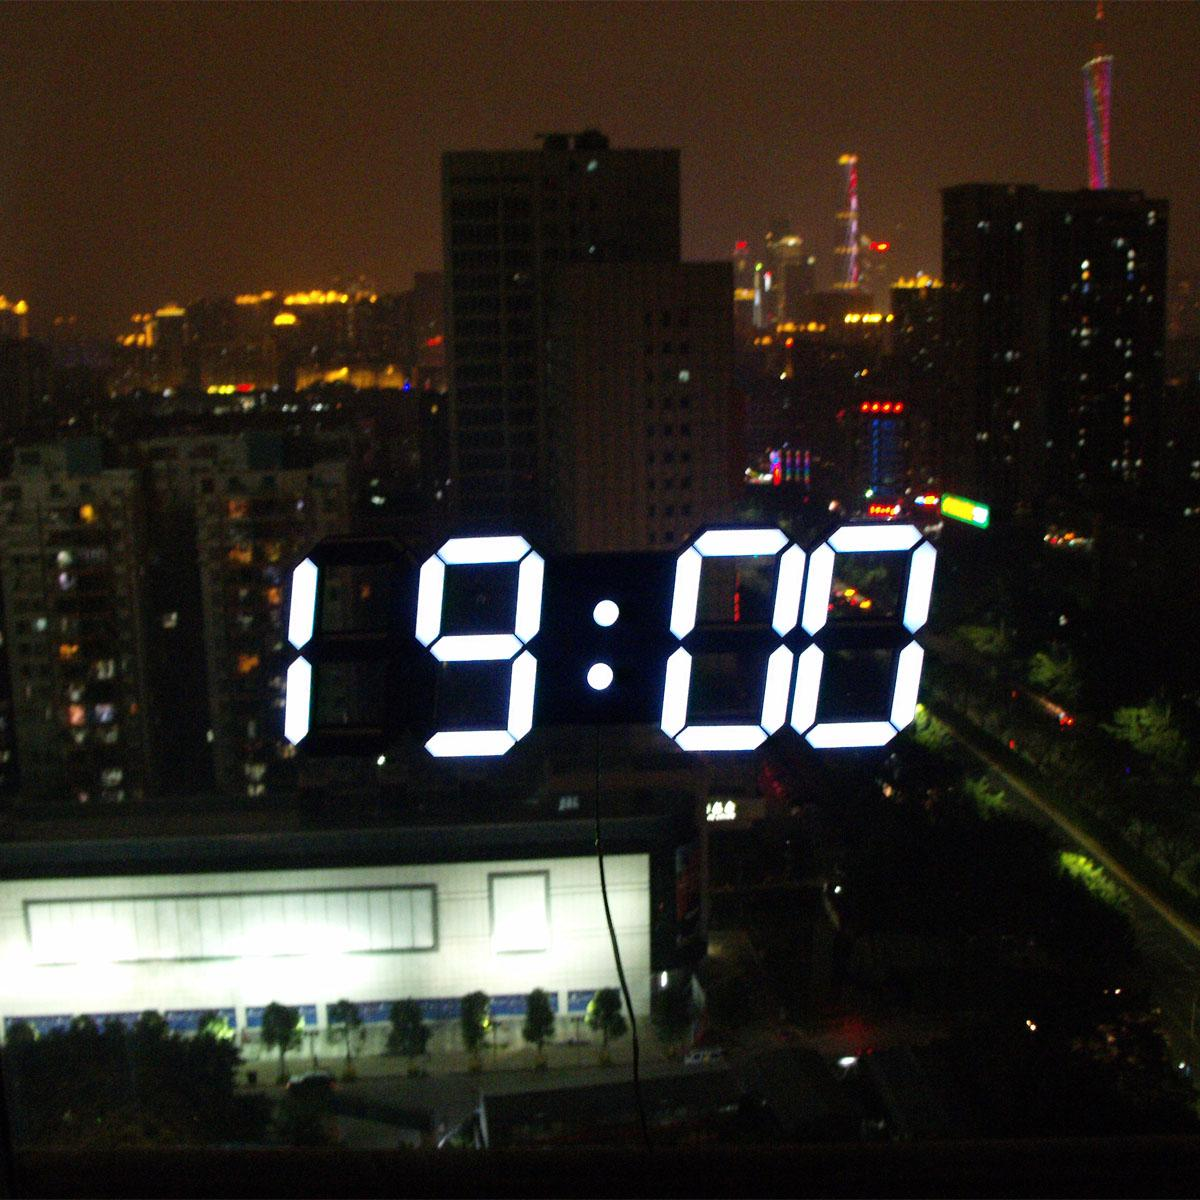 Wholesale creative remote control large digital led wall clock wholesale creative remote control large digital led wall clock modern design clocks home decor watch decoration decorative black white wall clocks amipublicfo Image collections